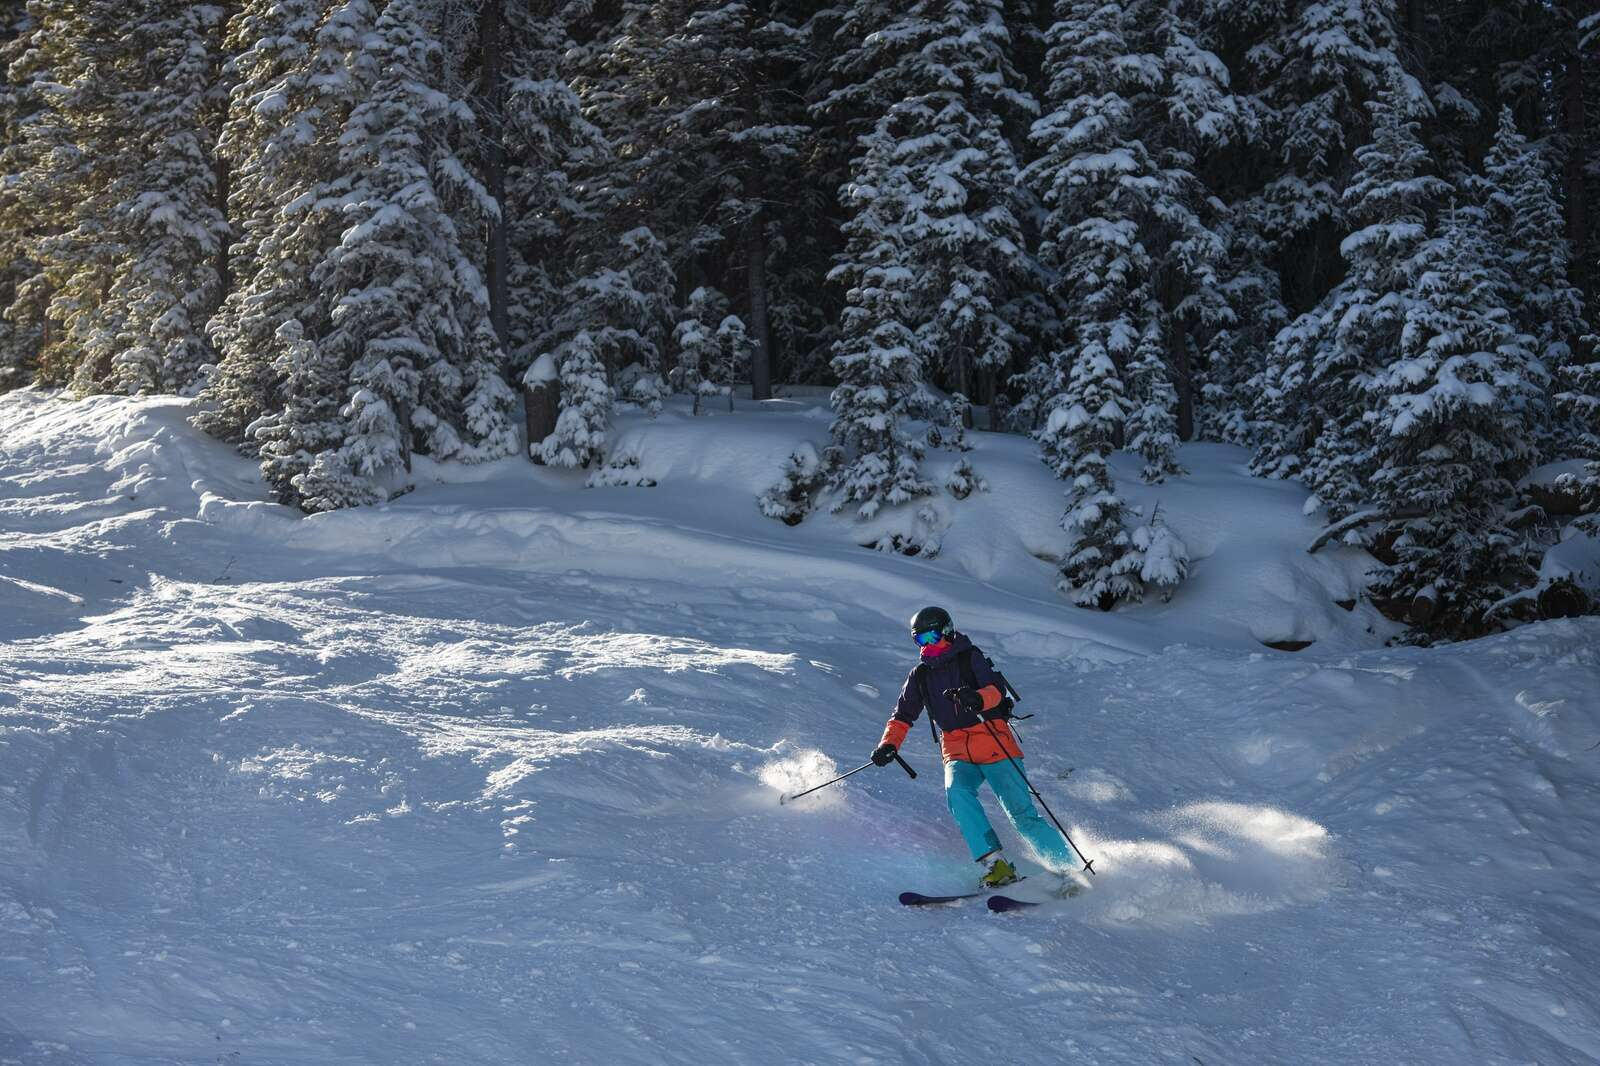 A skier maneuvers through the moguls on Pussyfoot on opening day on Aspen Mountain on Wednesday, Nov. 25, 2020. (Kelsey Brunner/The Aspen Times)